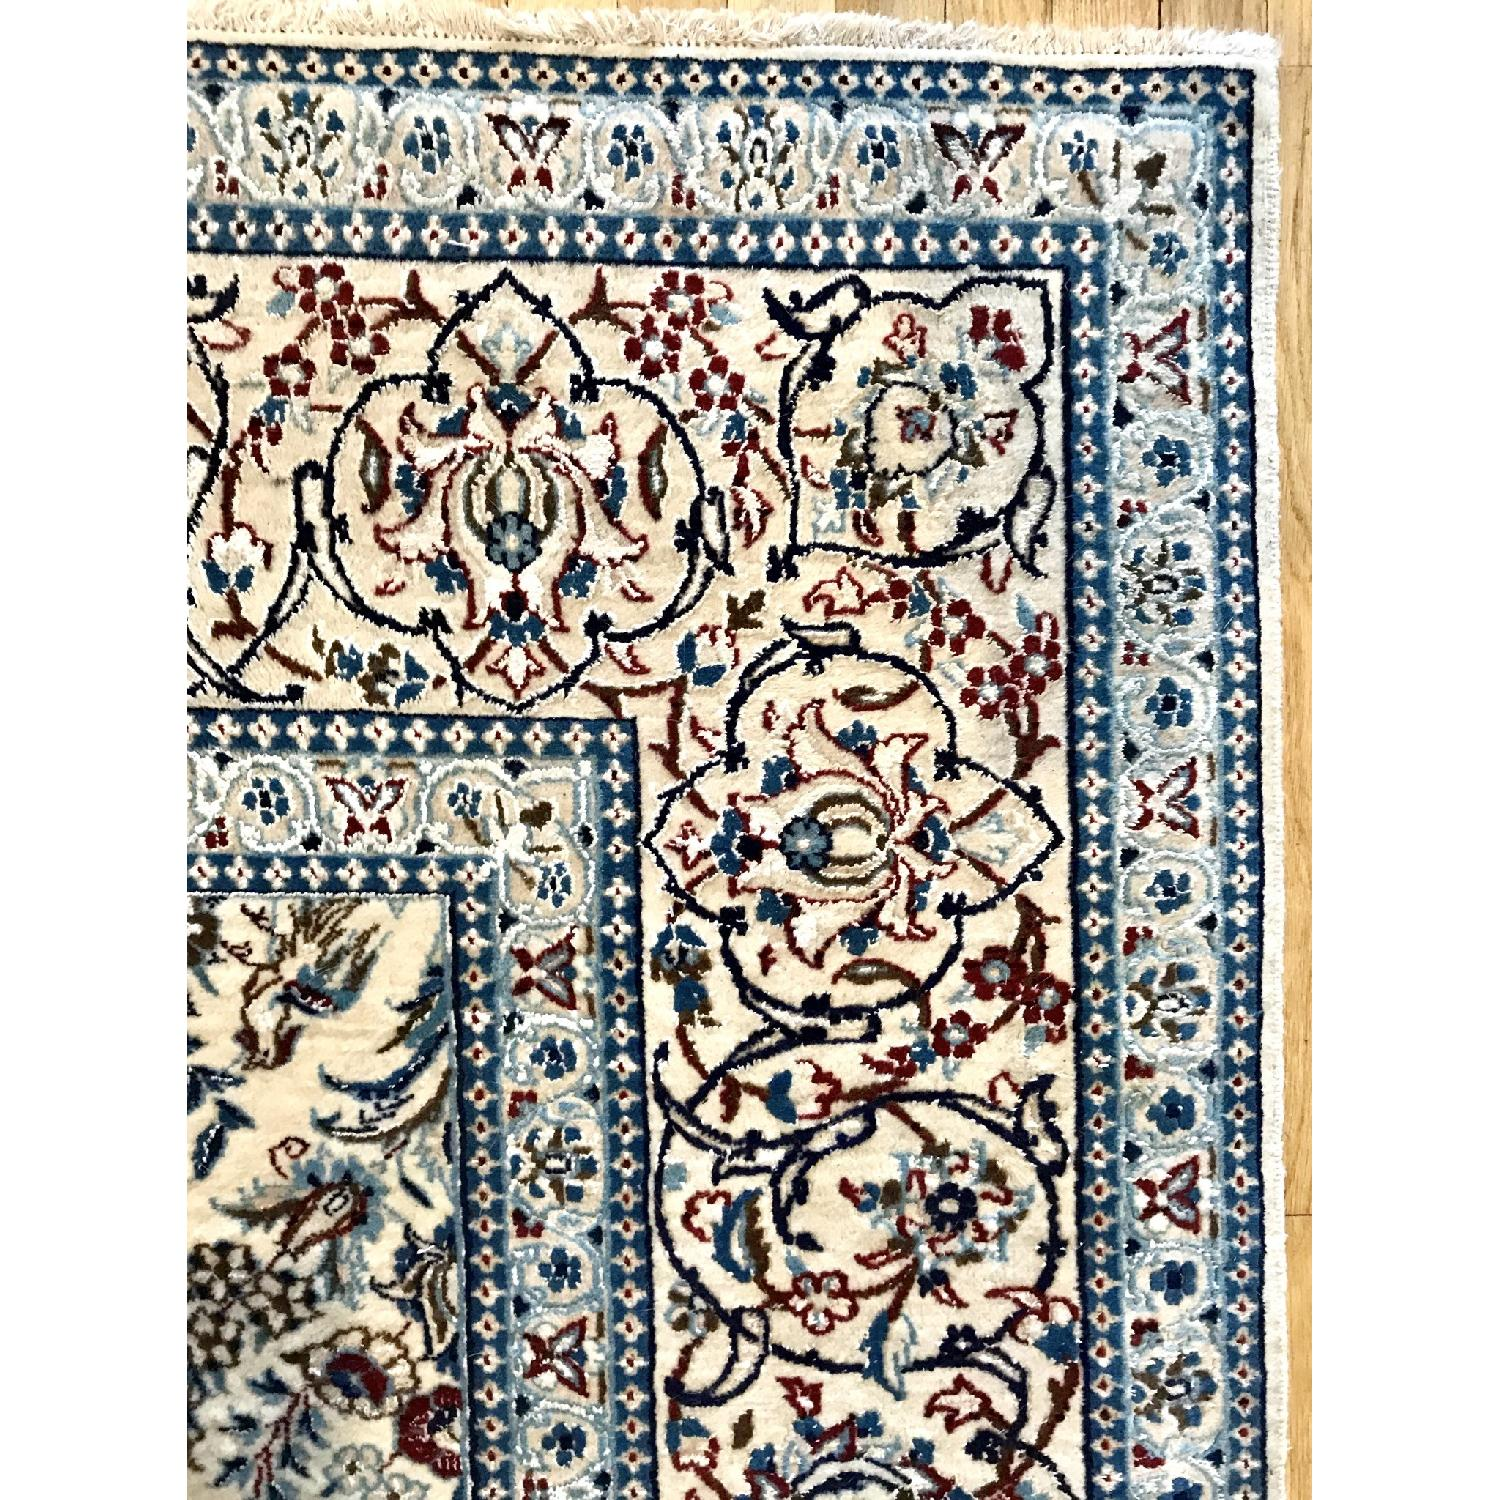 ABC Carpet & Home Handmade Wool Area Rug-1